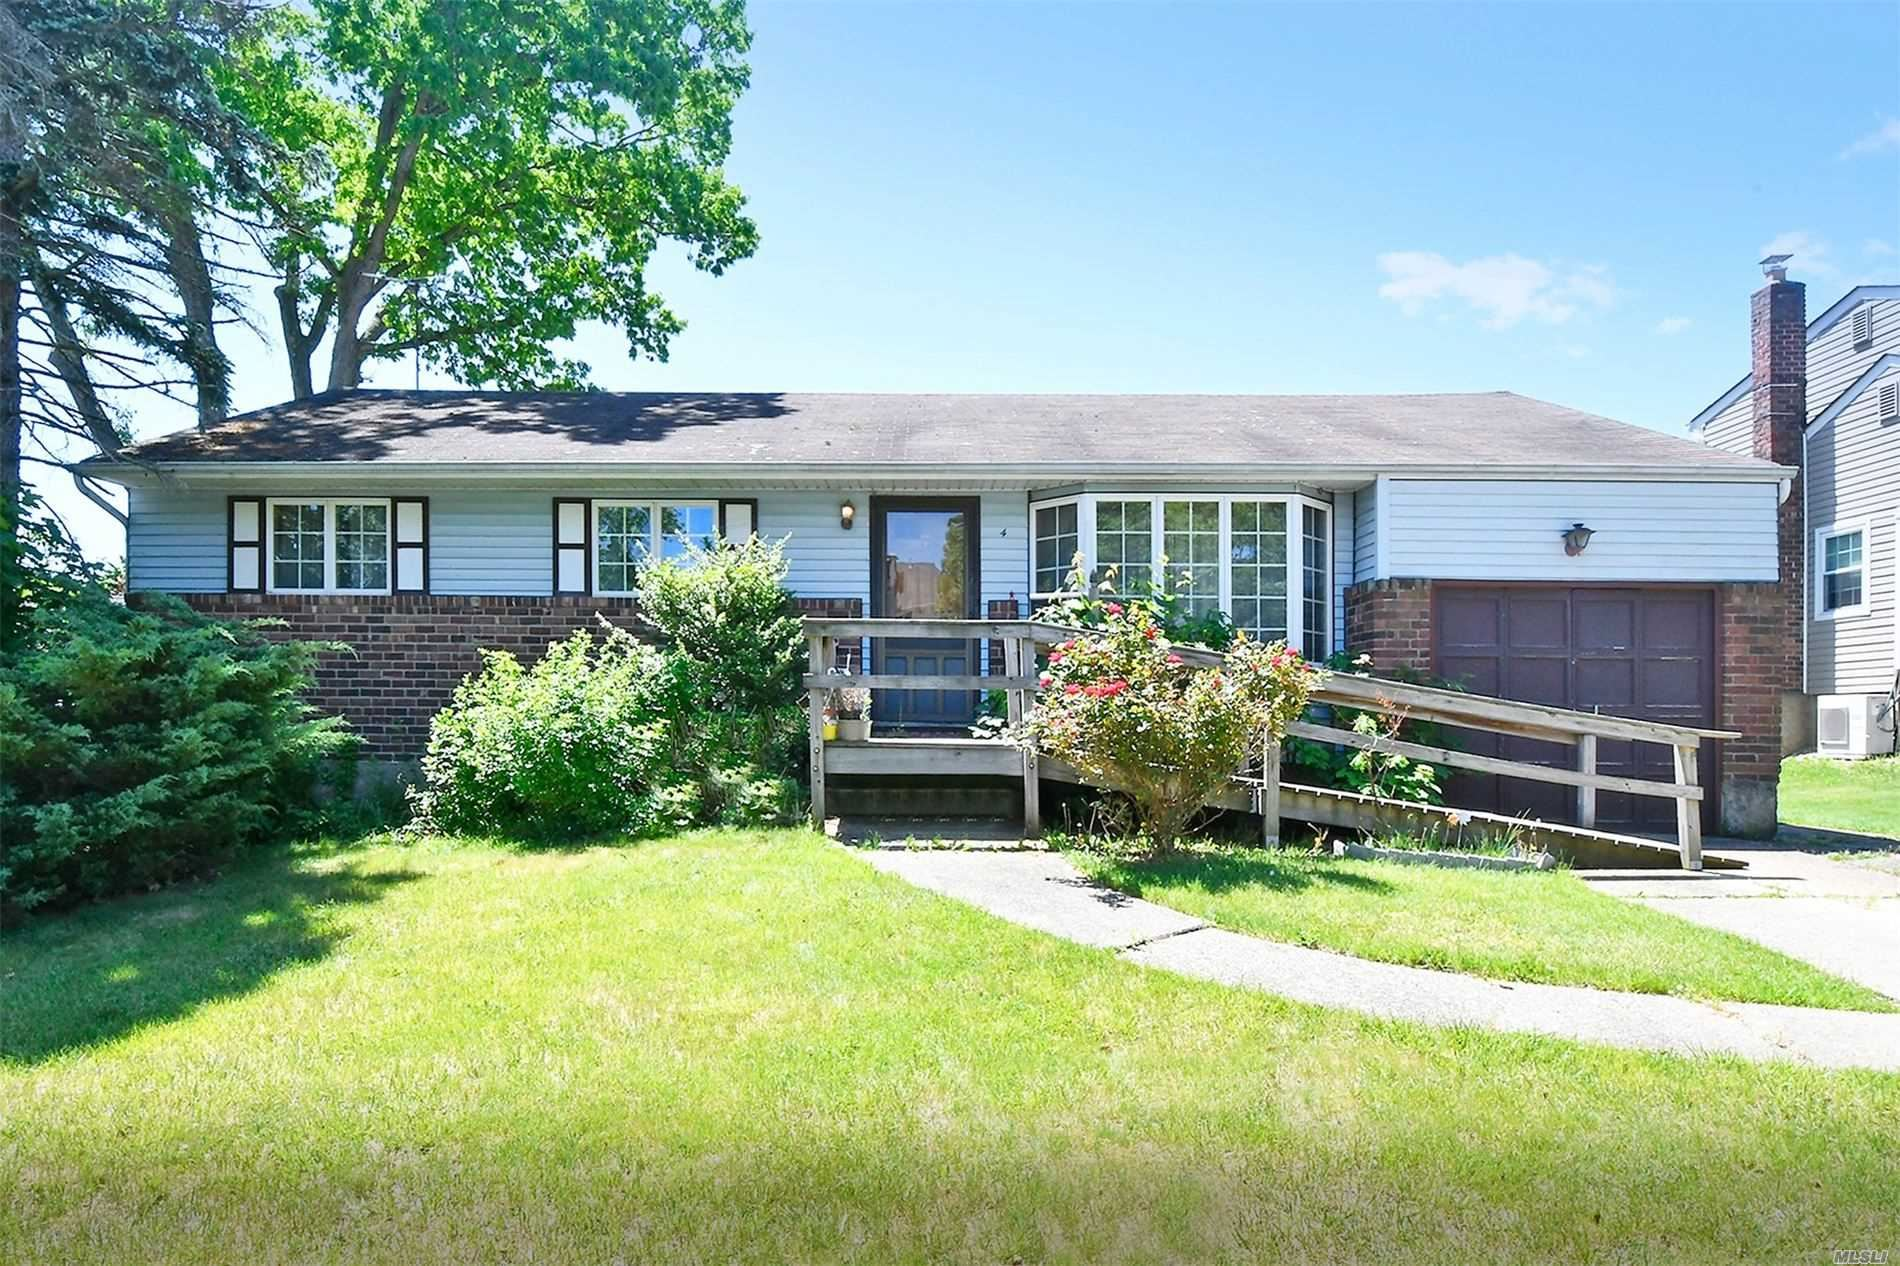 4 Sheli Dr, Old Bethpage, NY 11804 - MLS#: 3218717